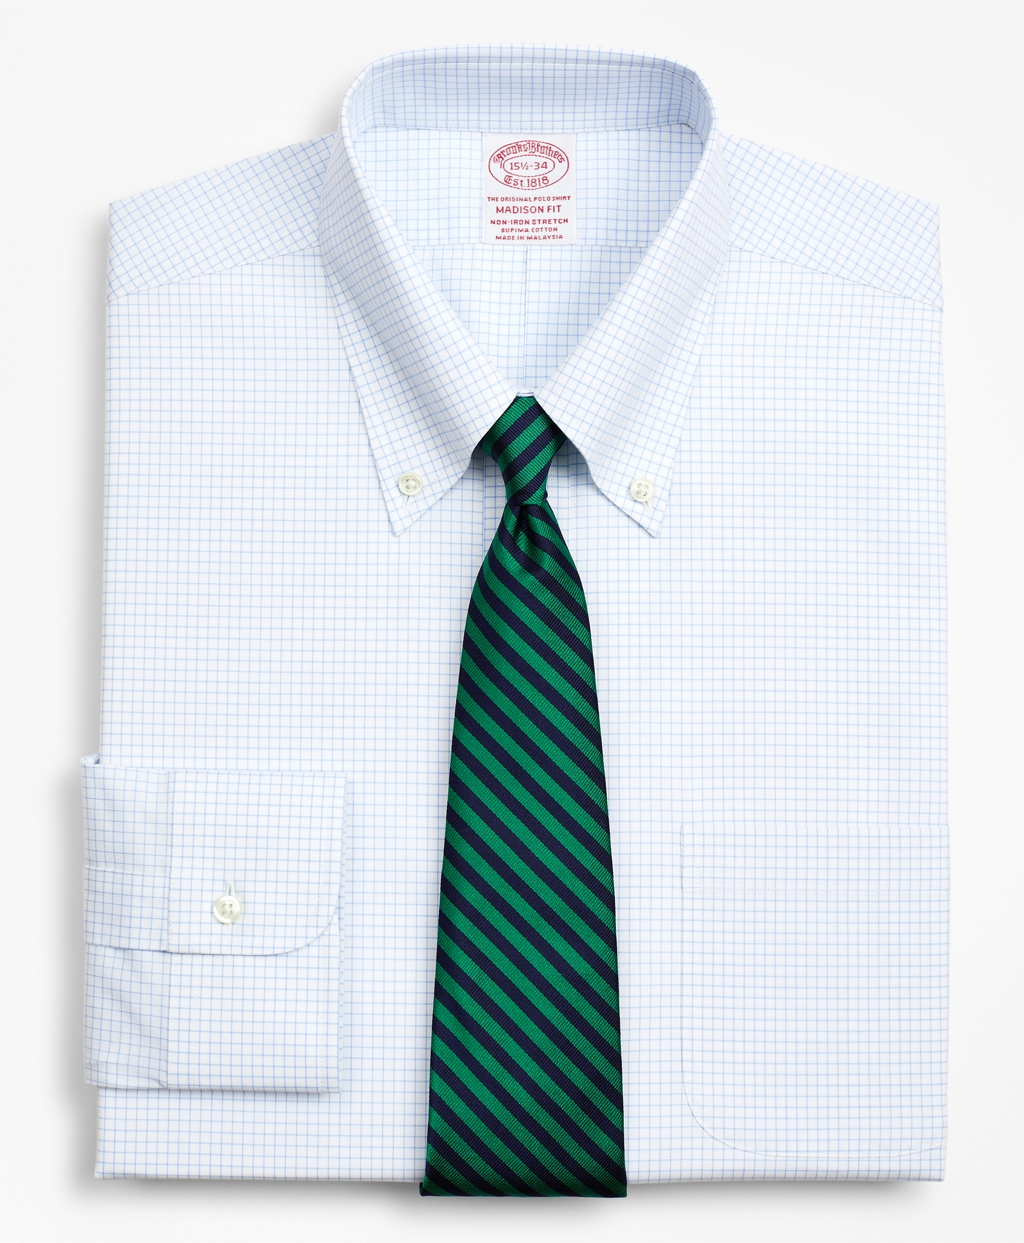 Brooksbrothers Stretch Madison Relaxed-Fit Dress Shirt, Non-Iron Poplin Button-Down Collar Small Grid Check